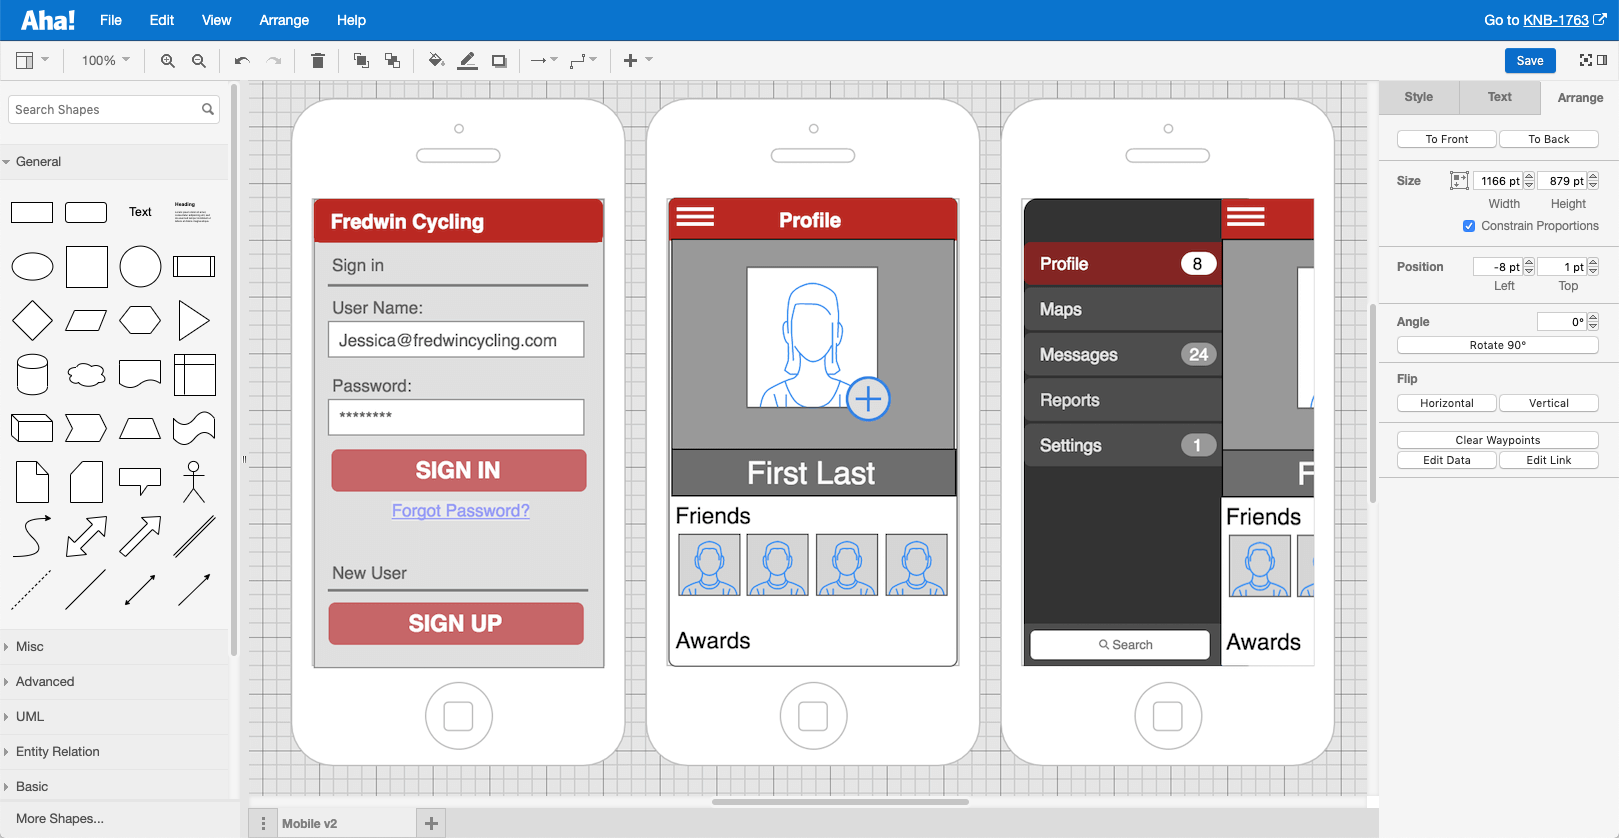 A mobile application mockup in Aha!